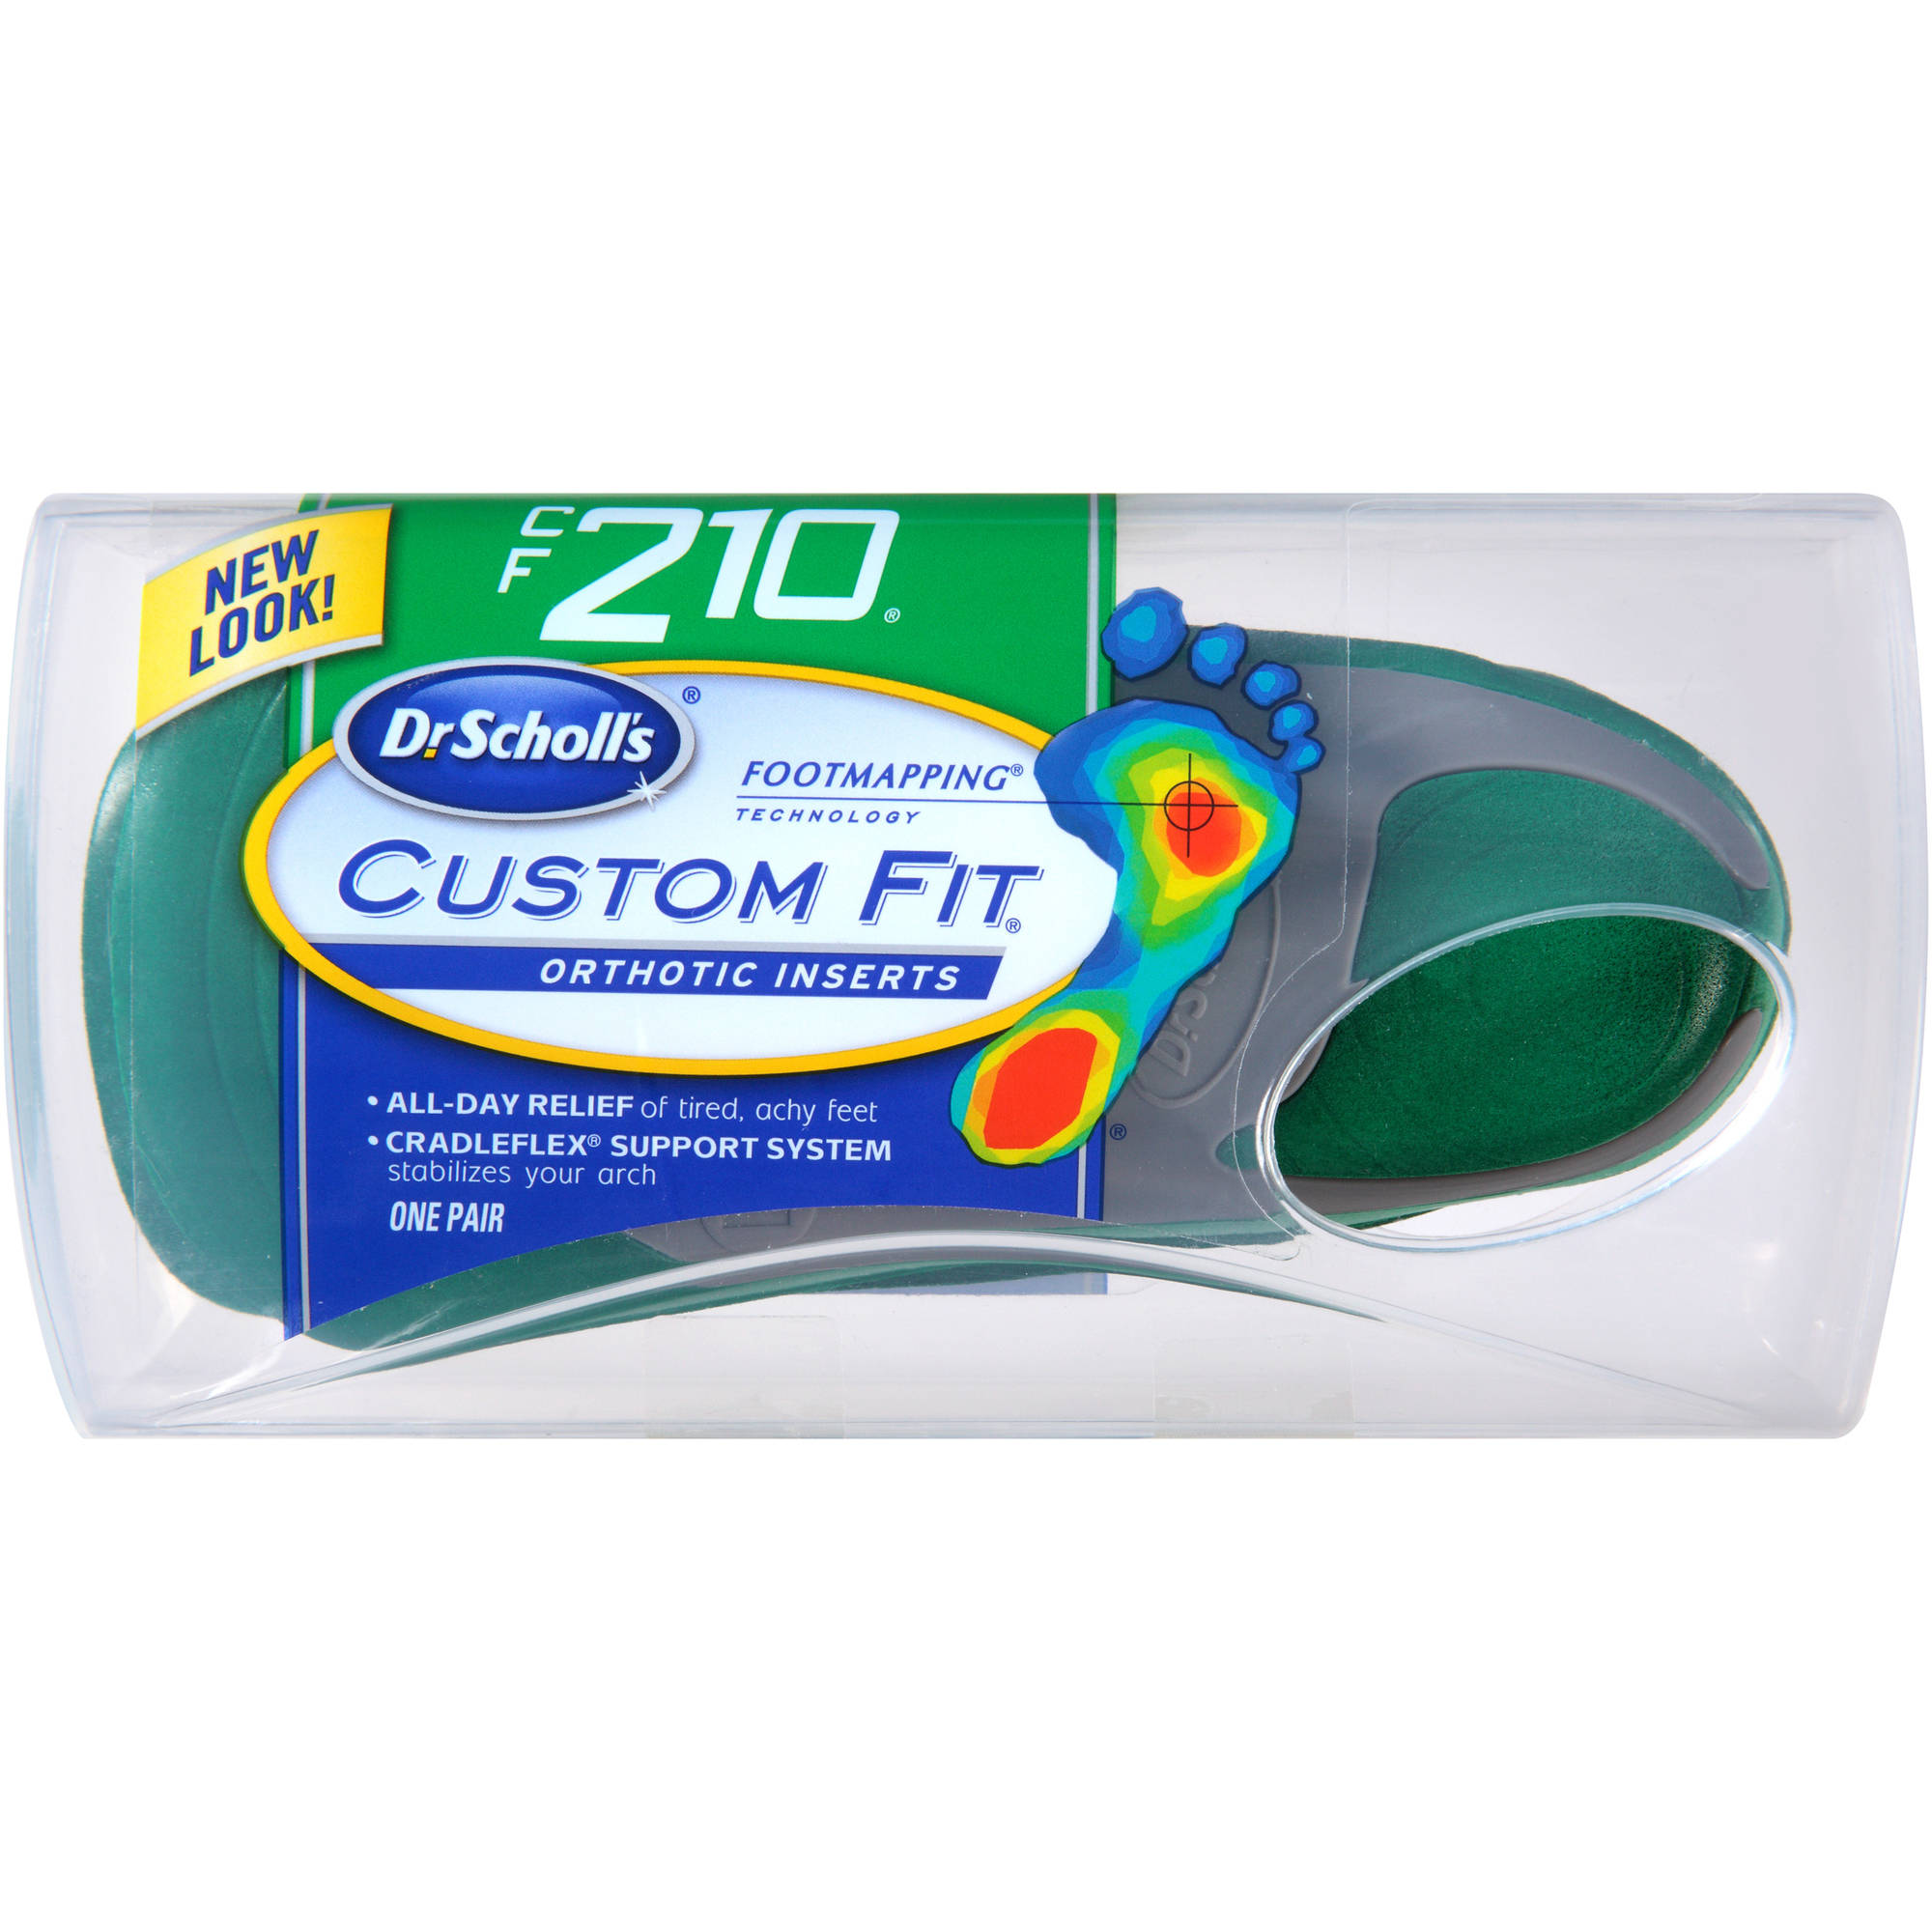 Dr. Scholl's Custom Fit CF210 Orthotic Inserts, 1 pr